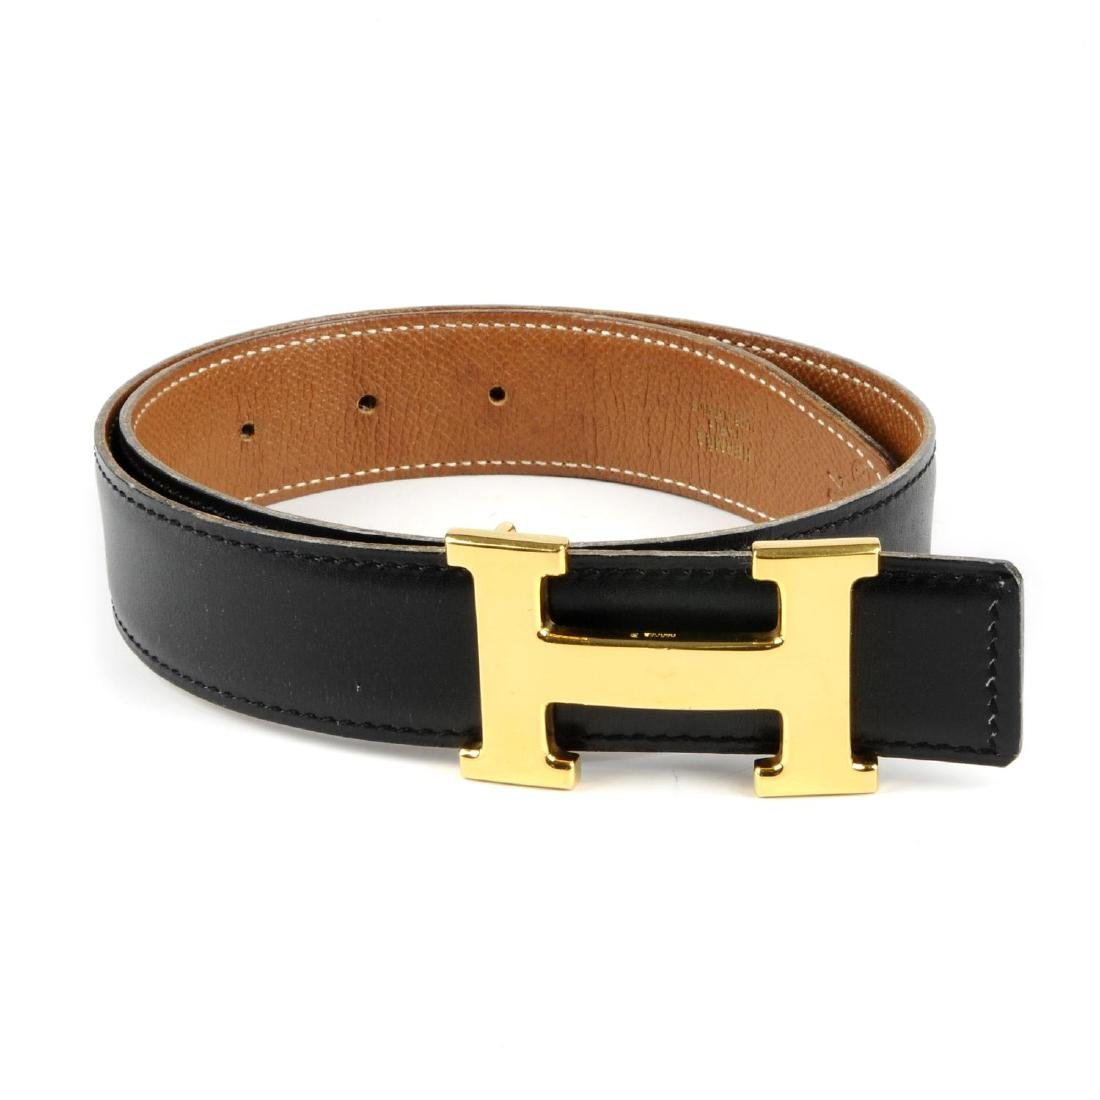 HERMÈS - a reversible logo buckle belt. Designed with